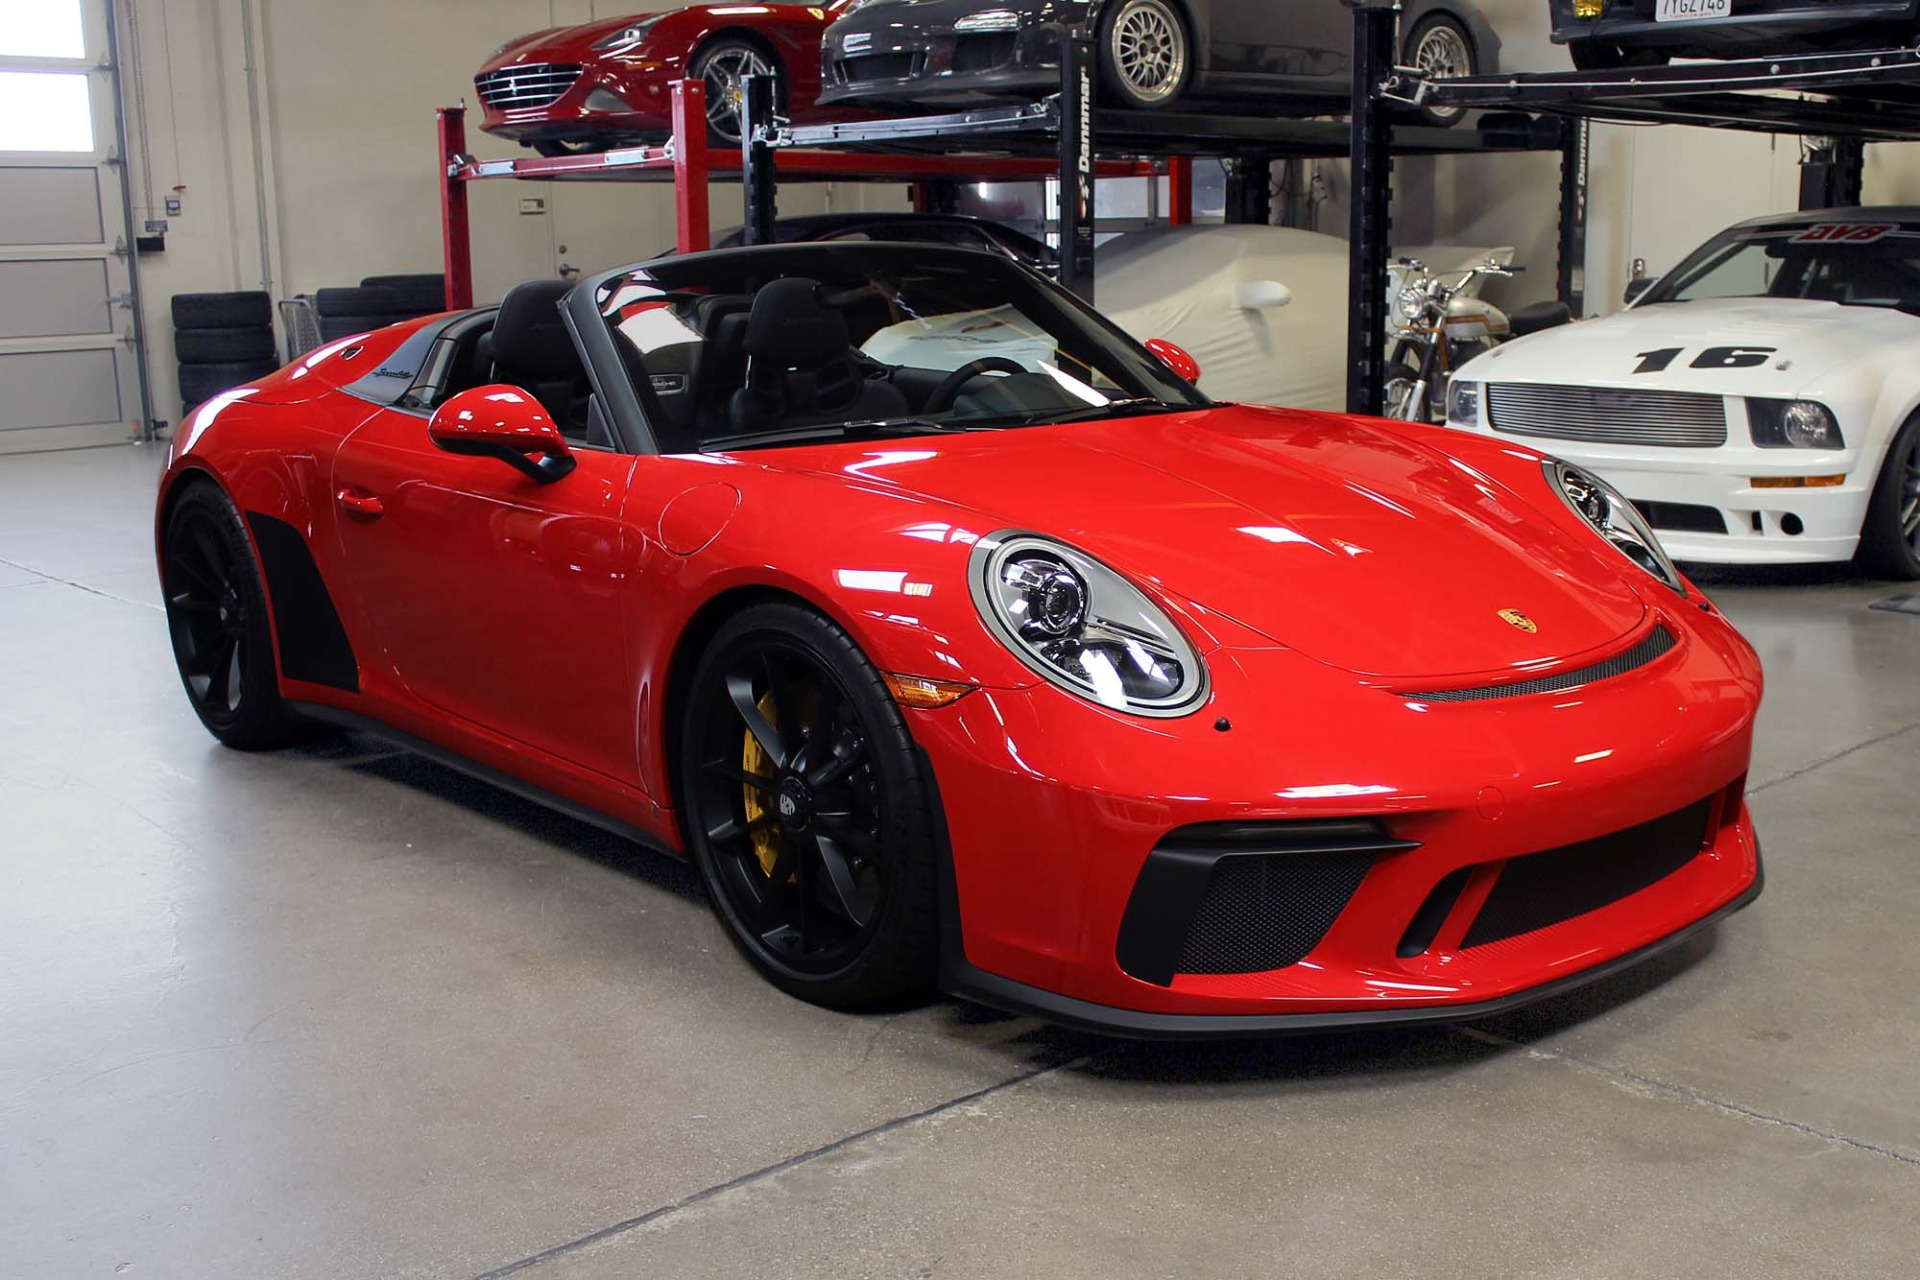 Used 2019 Porsche 911 Speedster for sale $309,995 at San Francisco Sports Cars in San Carlos CA 94070 1